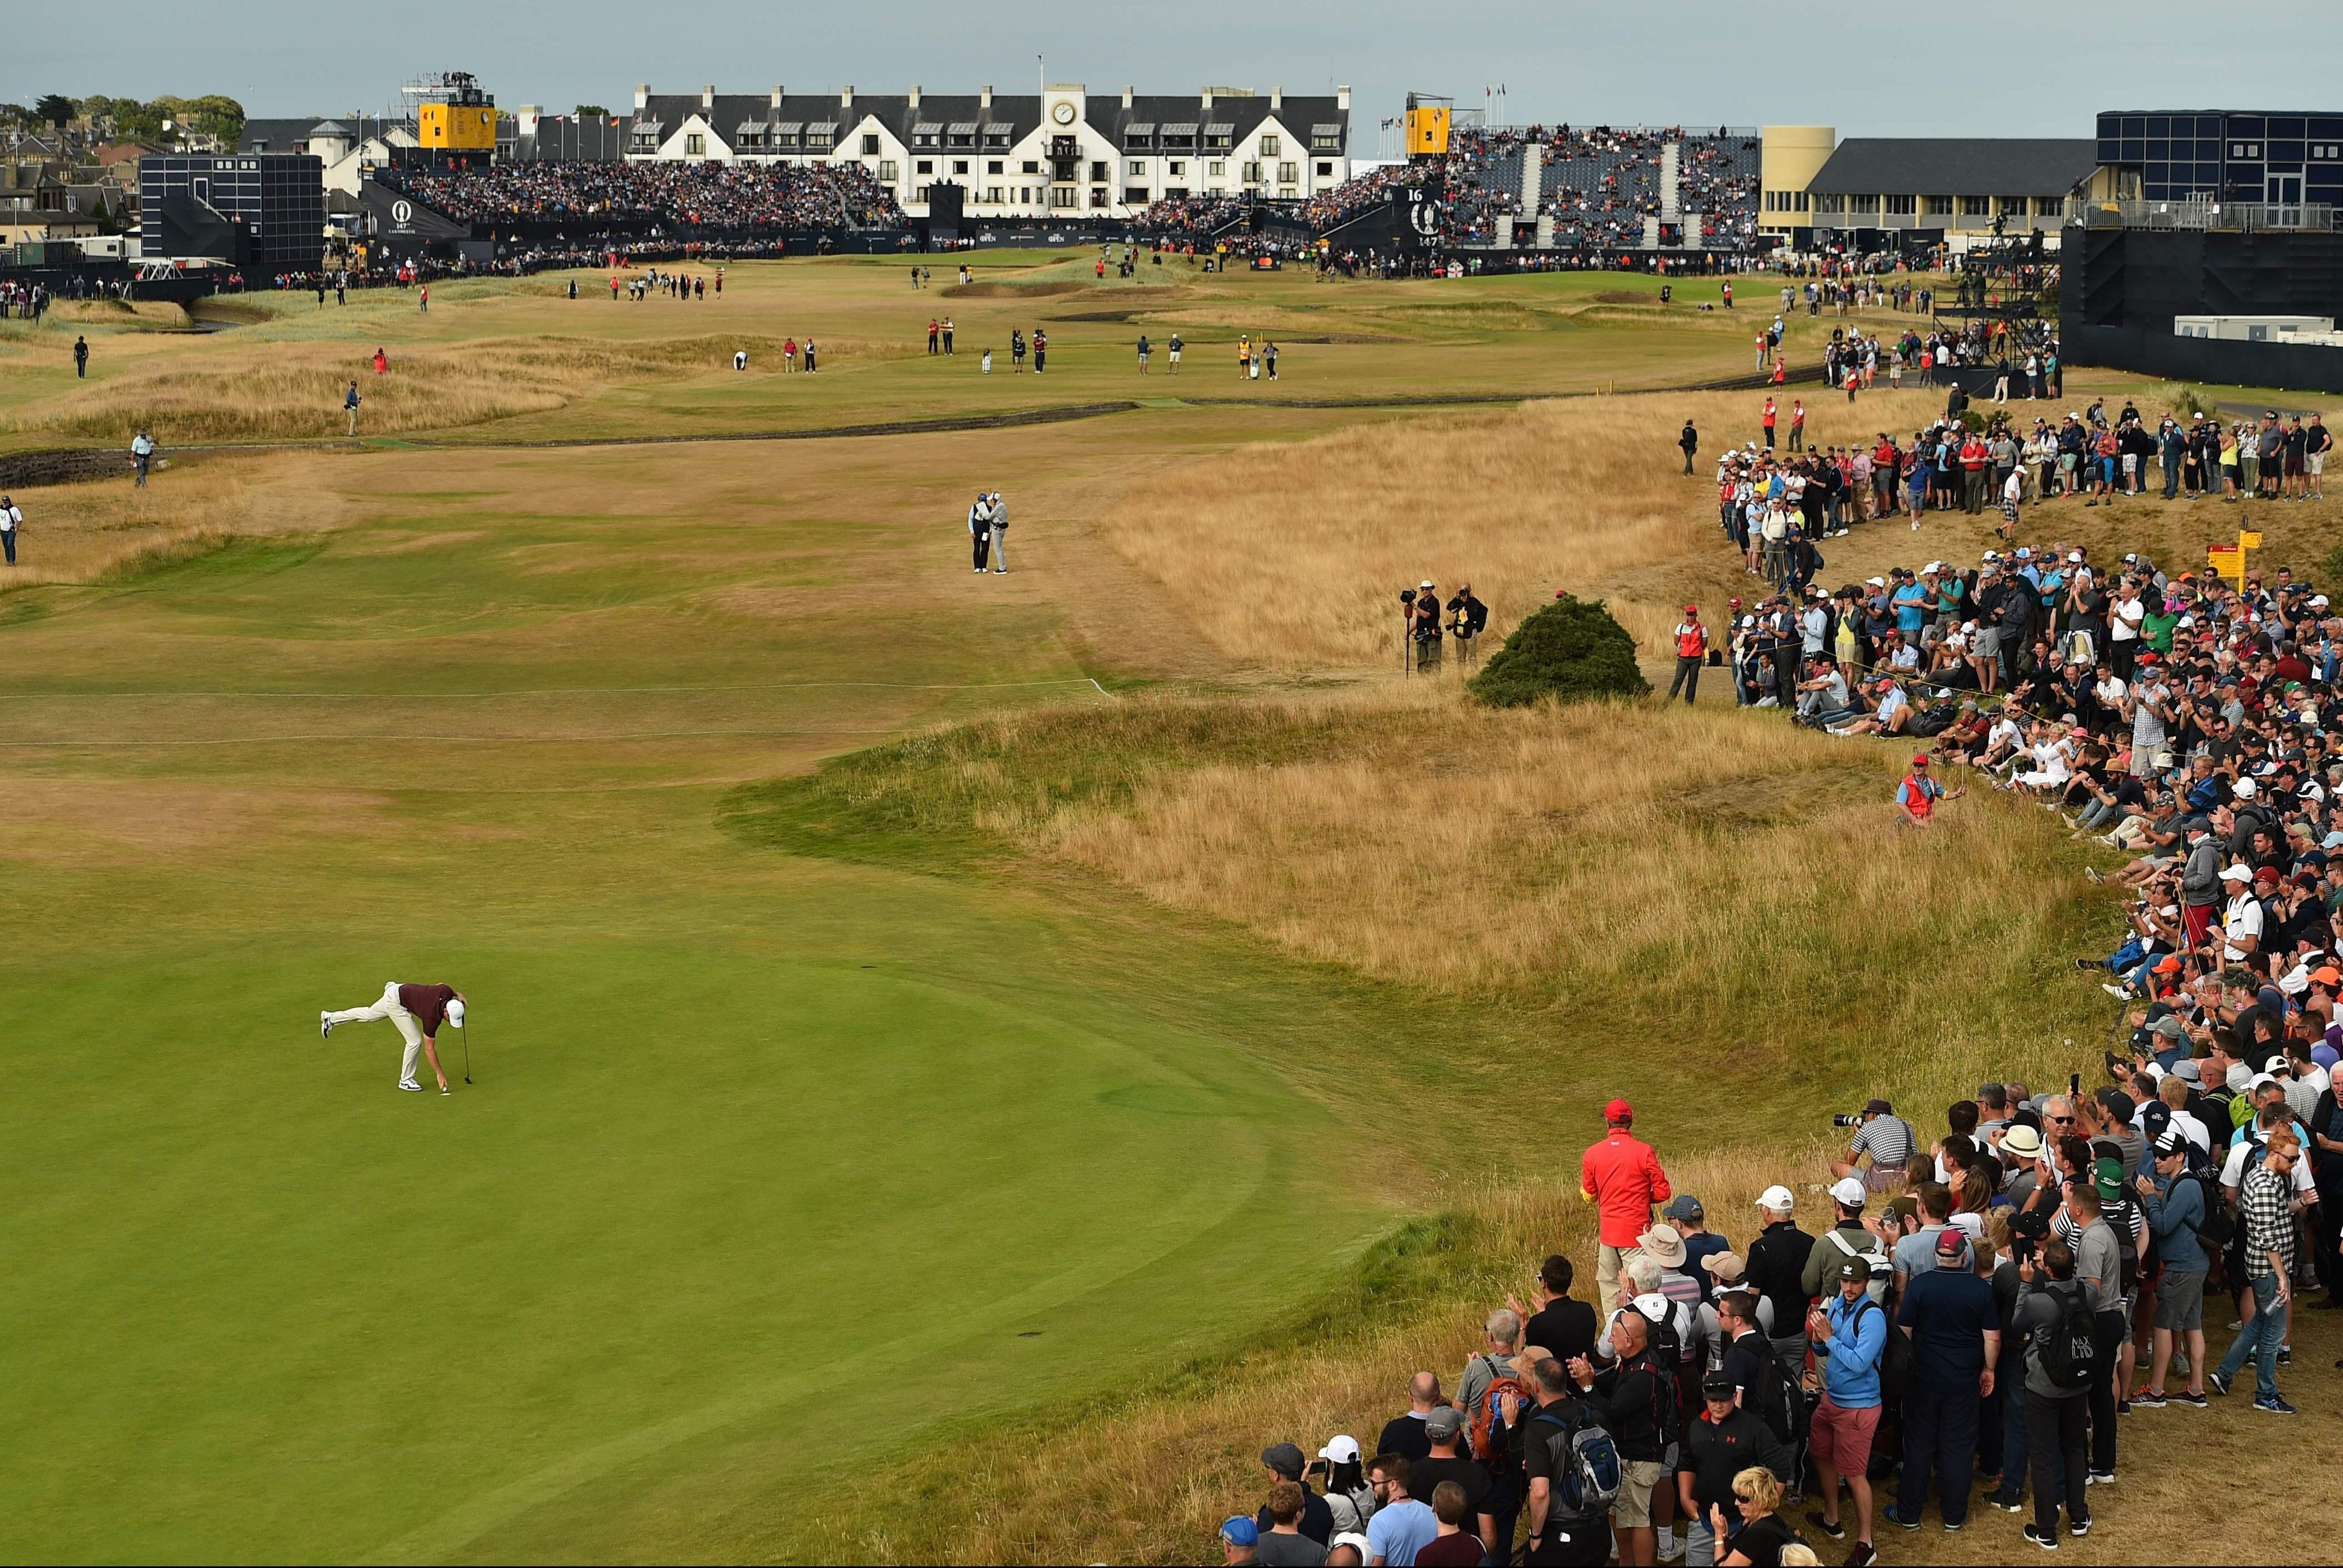 Rory McIlroy is the leading Brit, along with Tommy Fleetwood, on five under par